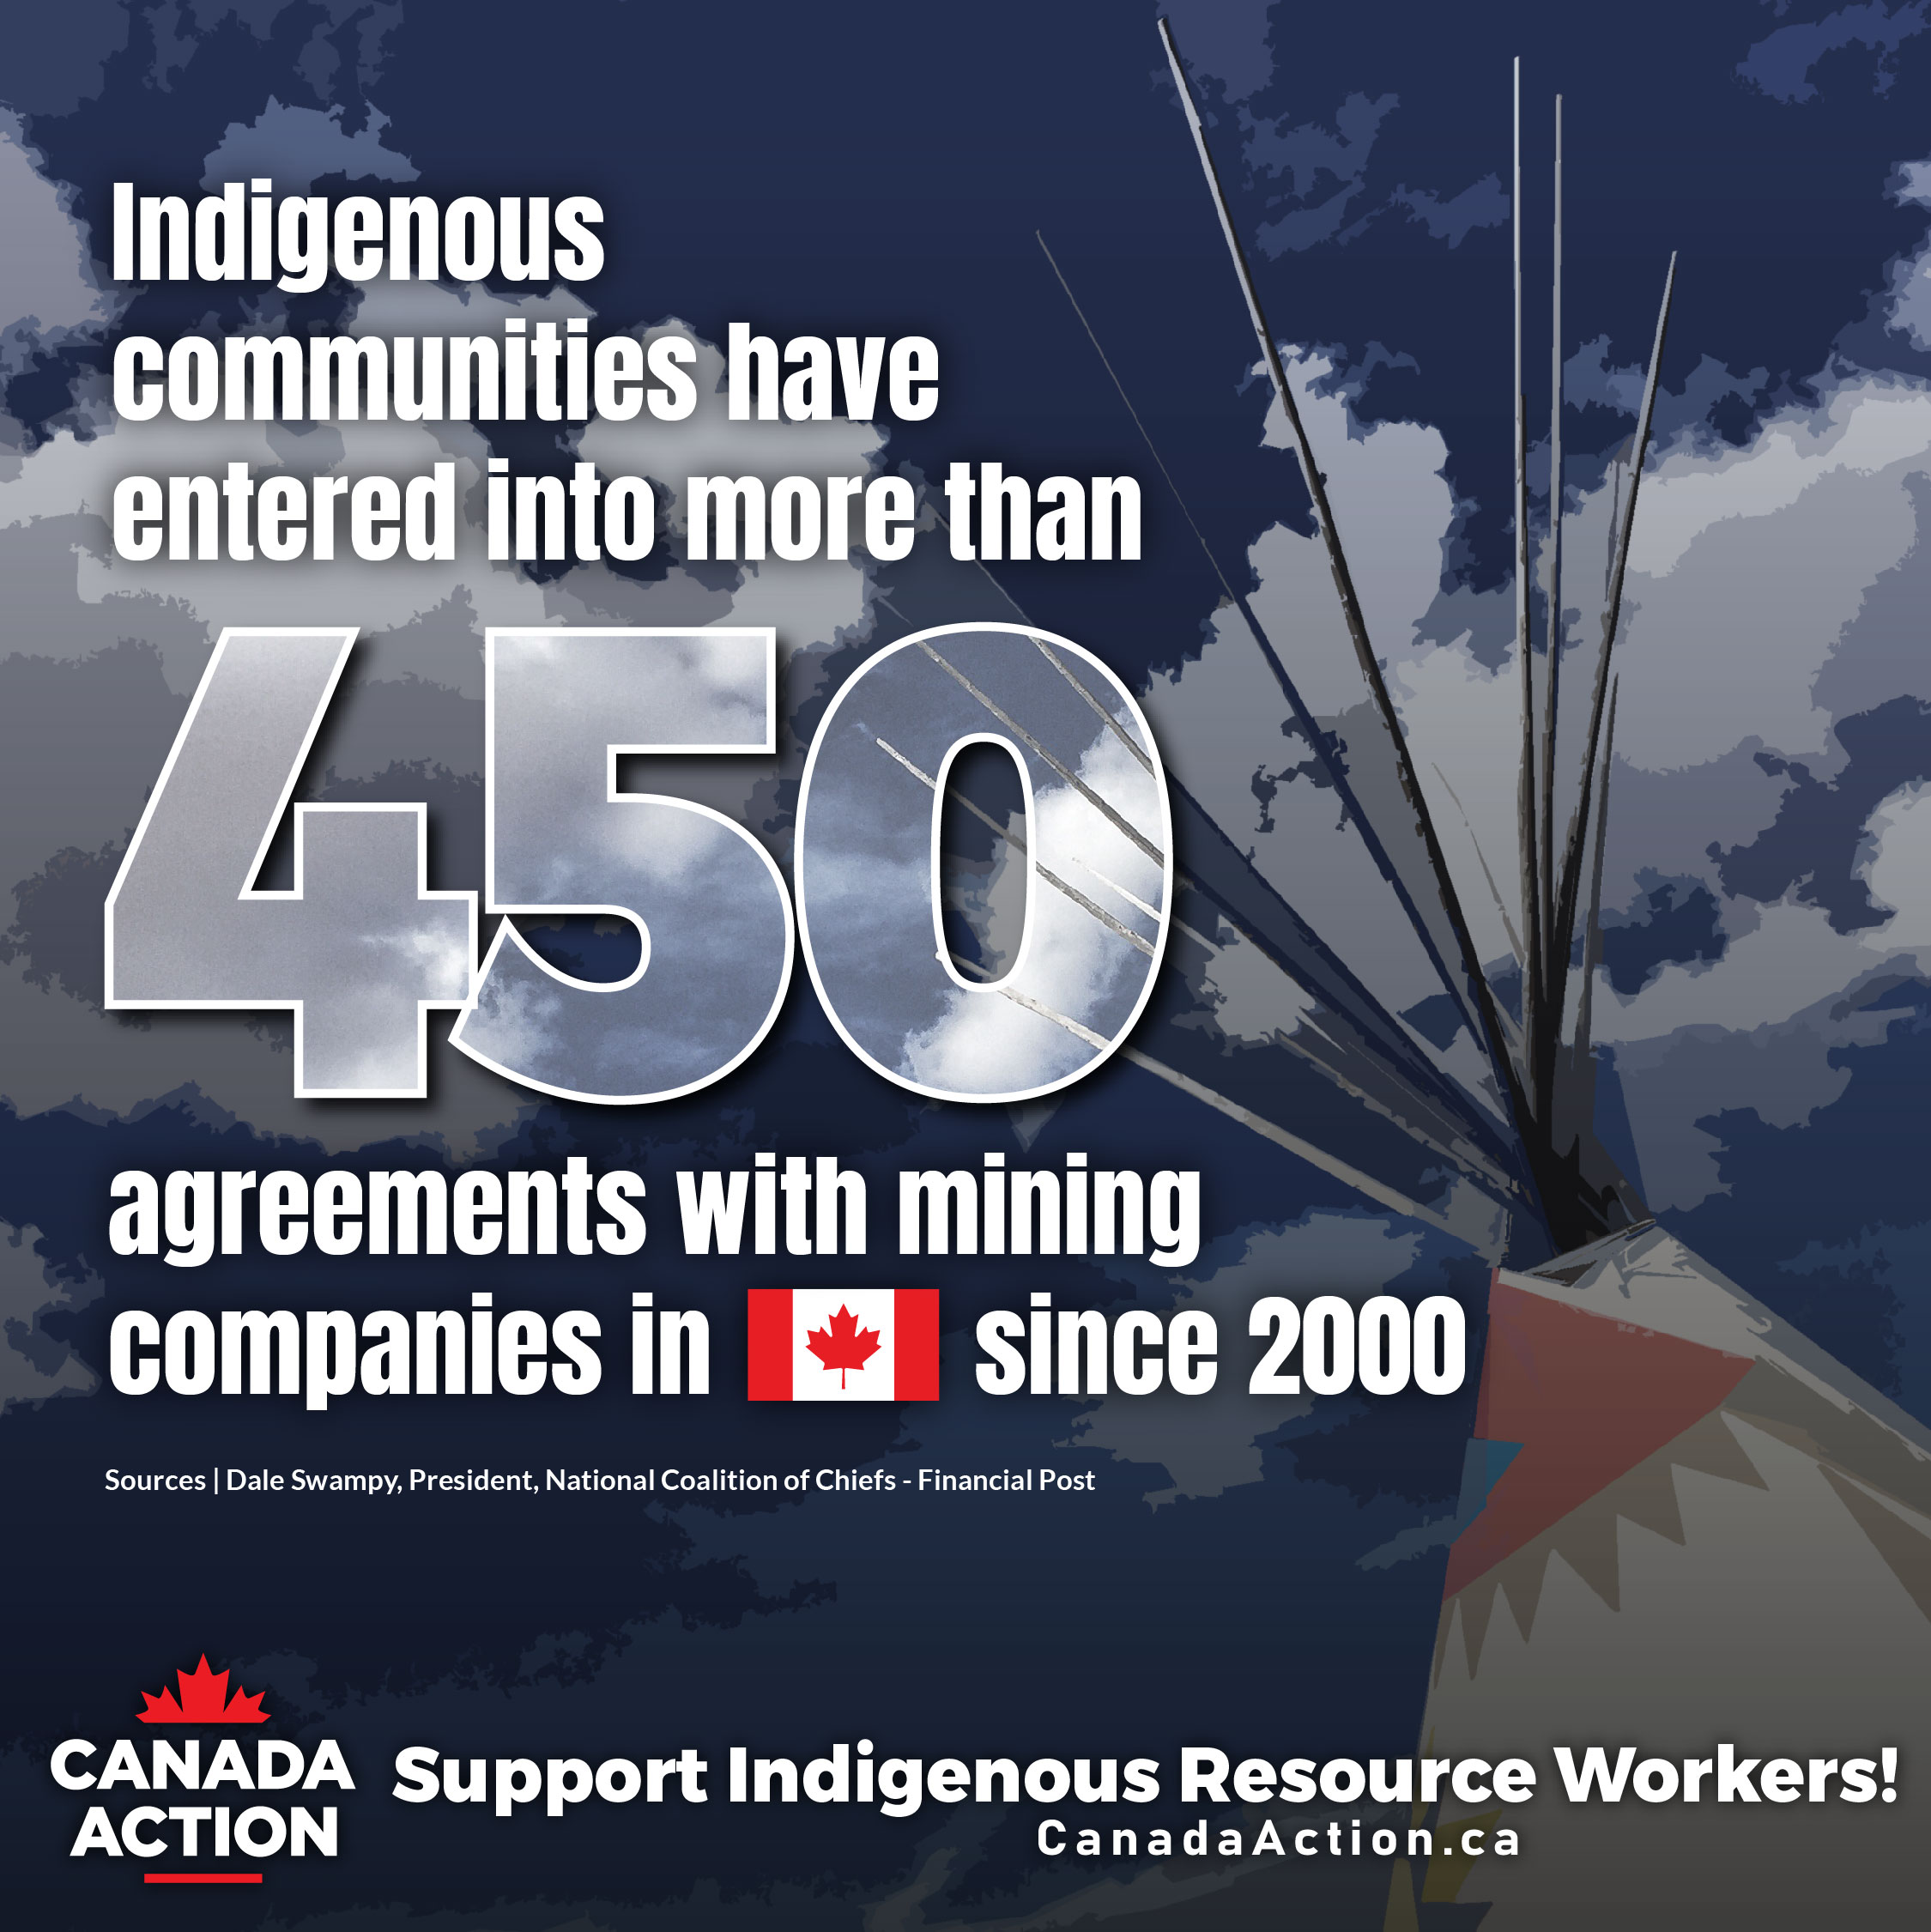 Mining Companies Signed 450 Agreements with Indigenous Communities in Canada Since 2000